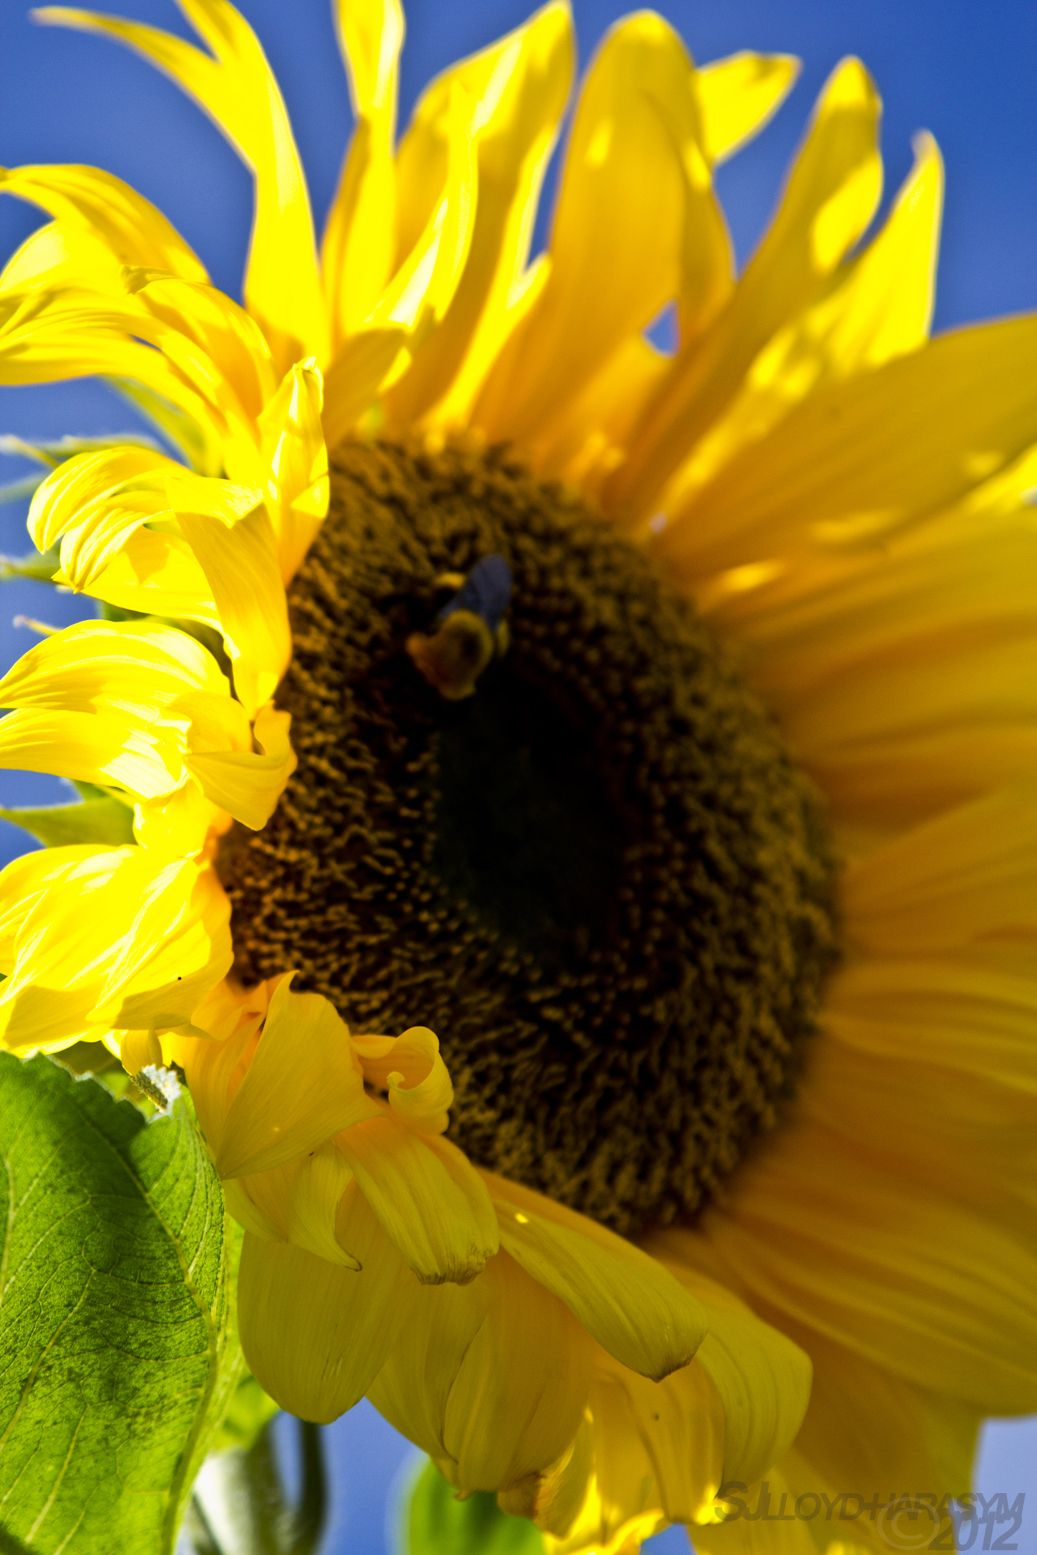 sunflowers makes me just feel happy